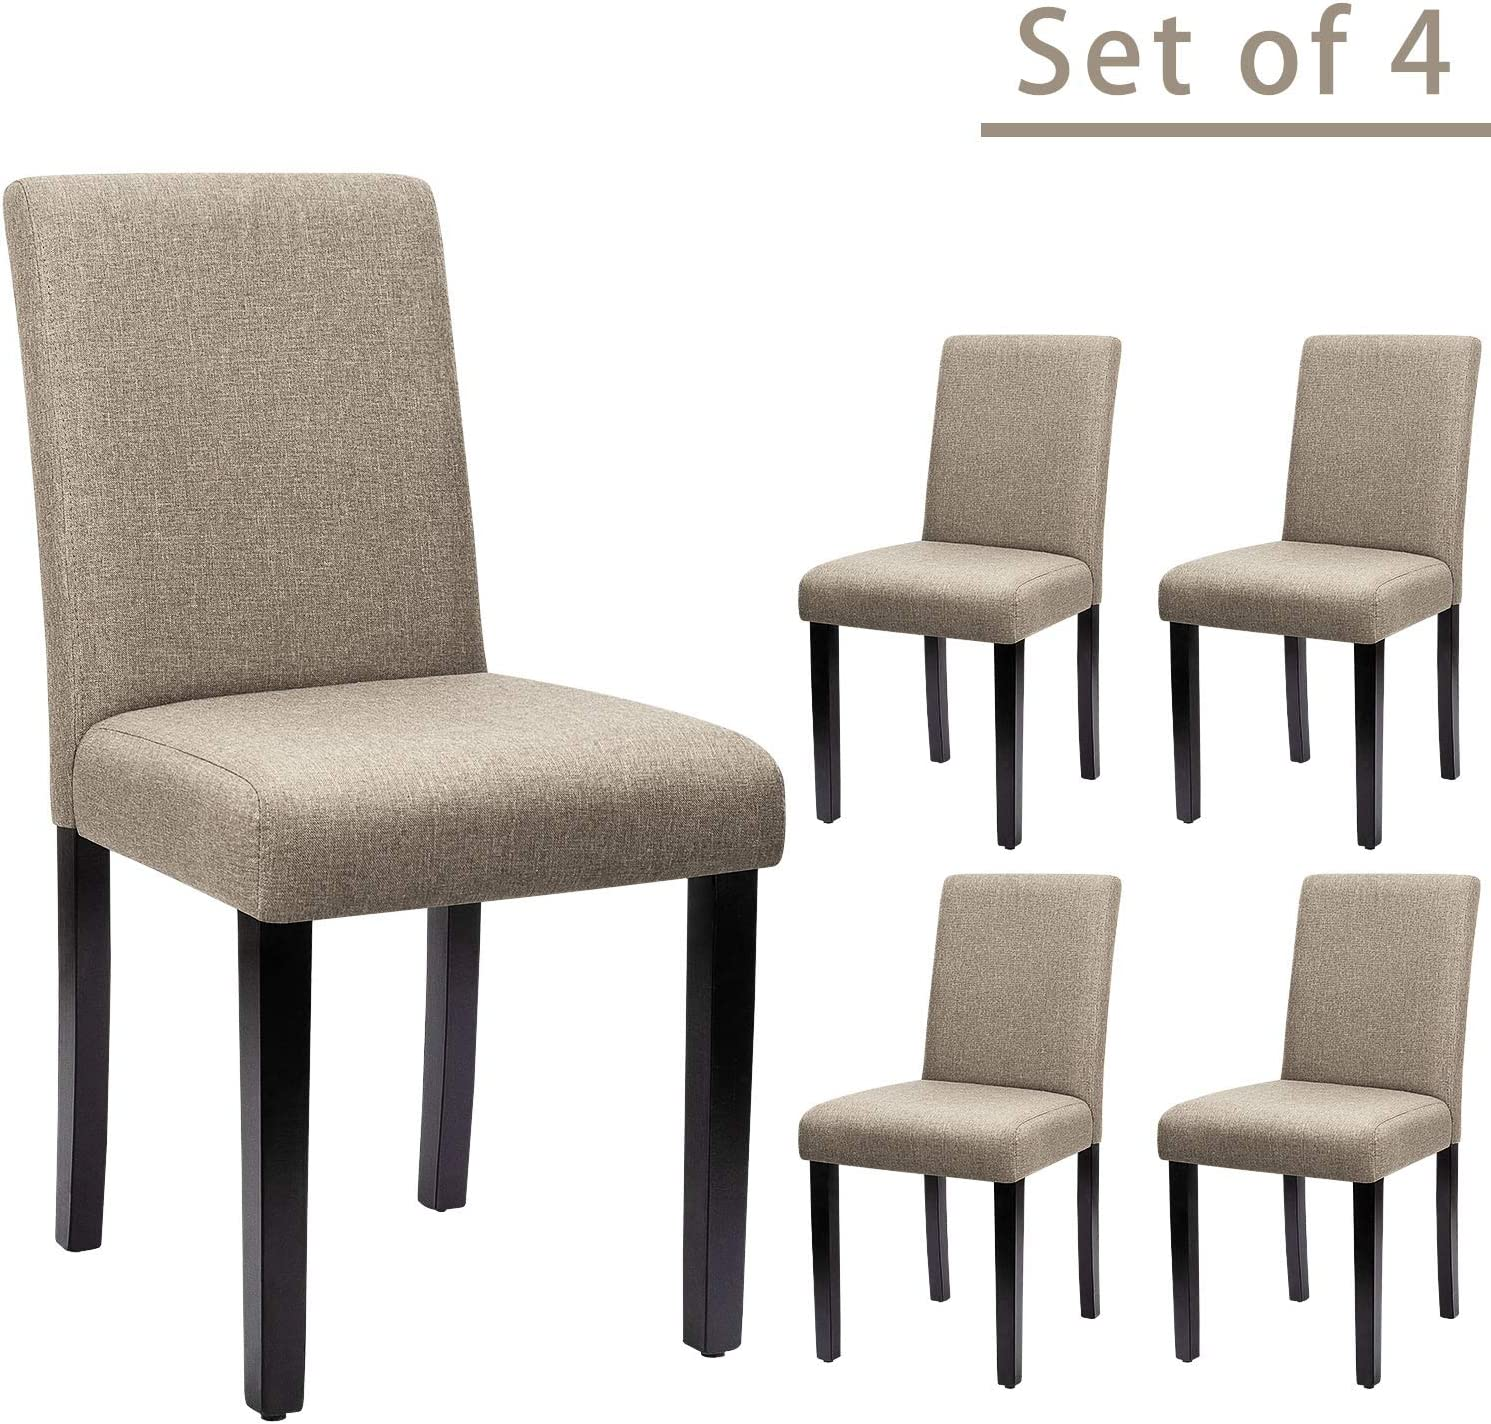 Furniwell Dining Chairs Fabric Upholstered Parson Urban Style Kitchen Side Padded Chair with Solid Wood Legs Set of 4 Beige